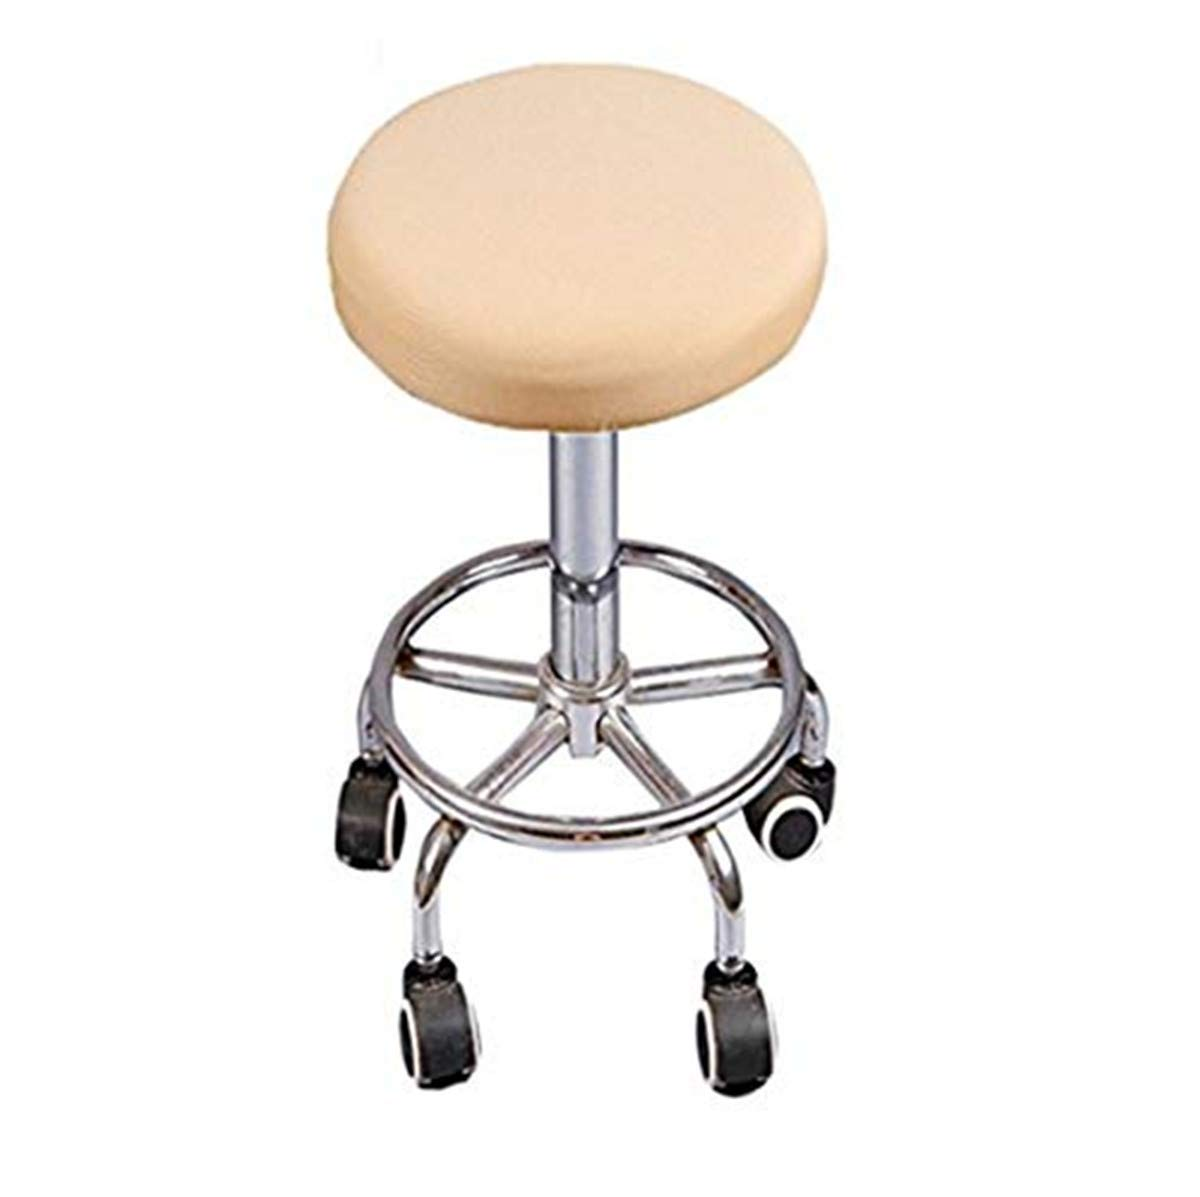 Soft Stretchable Round Bar Stool Chair Covers Protectors 14 Inch Pack of 2 (Champagne)